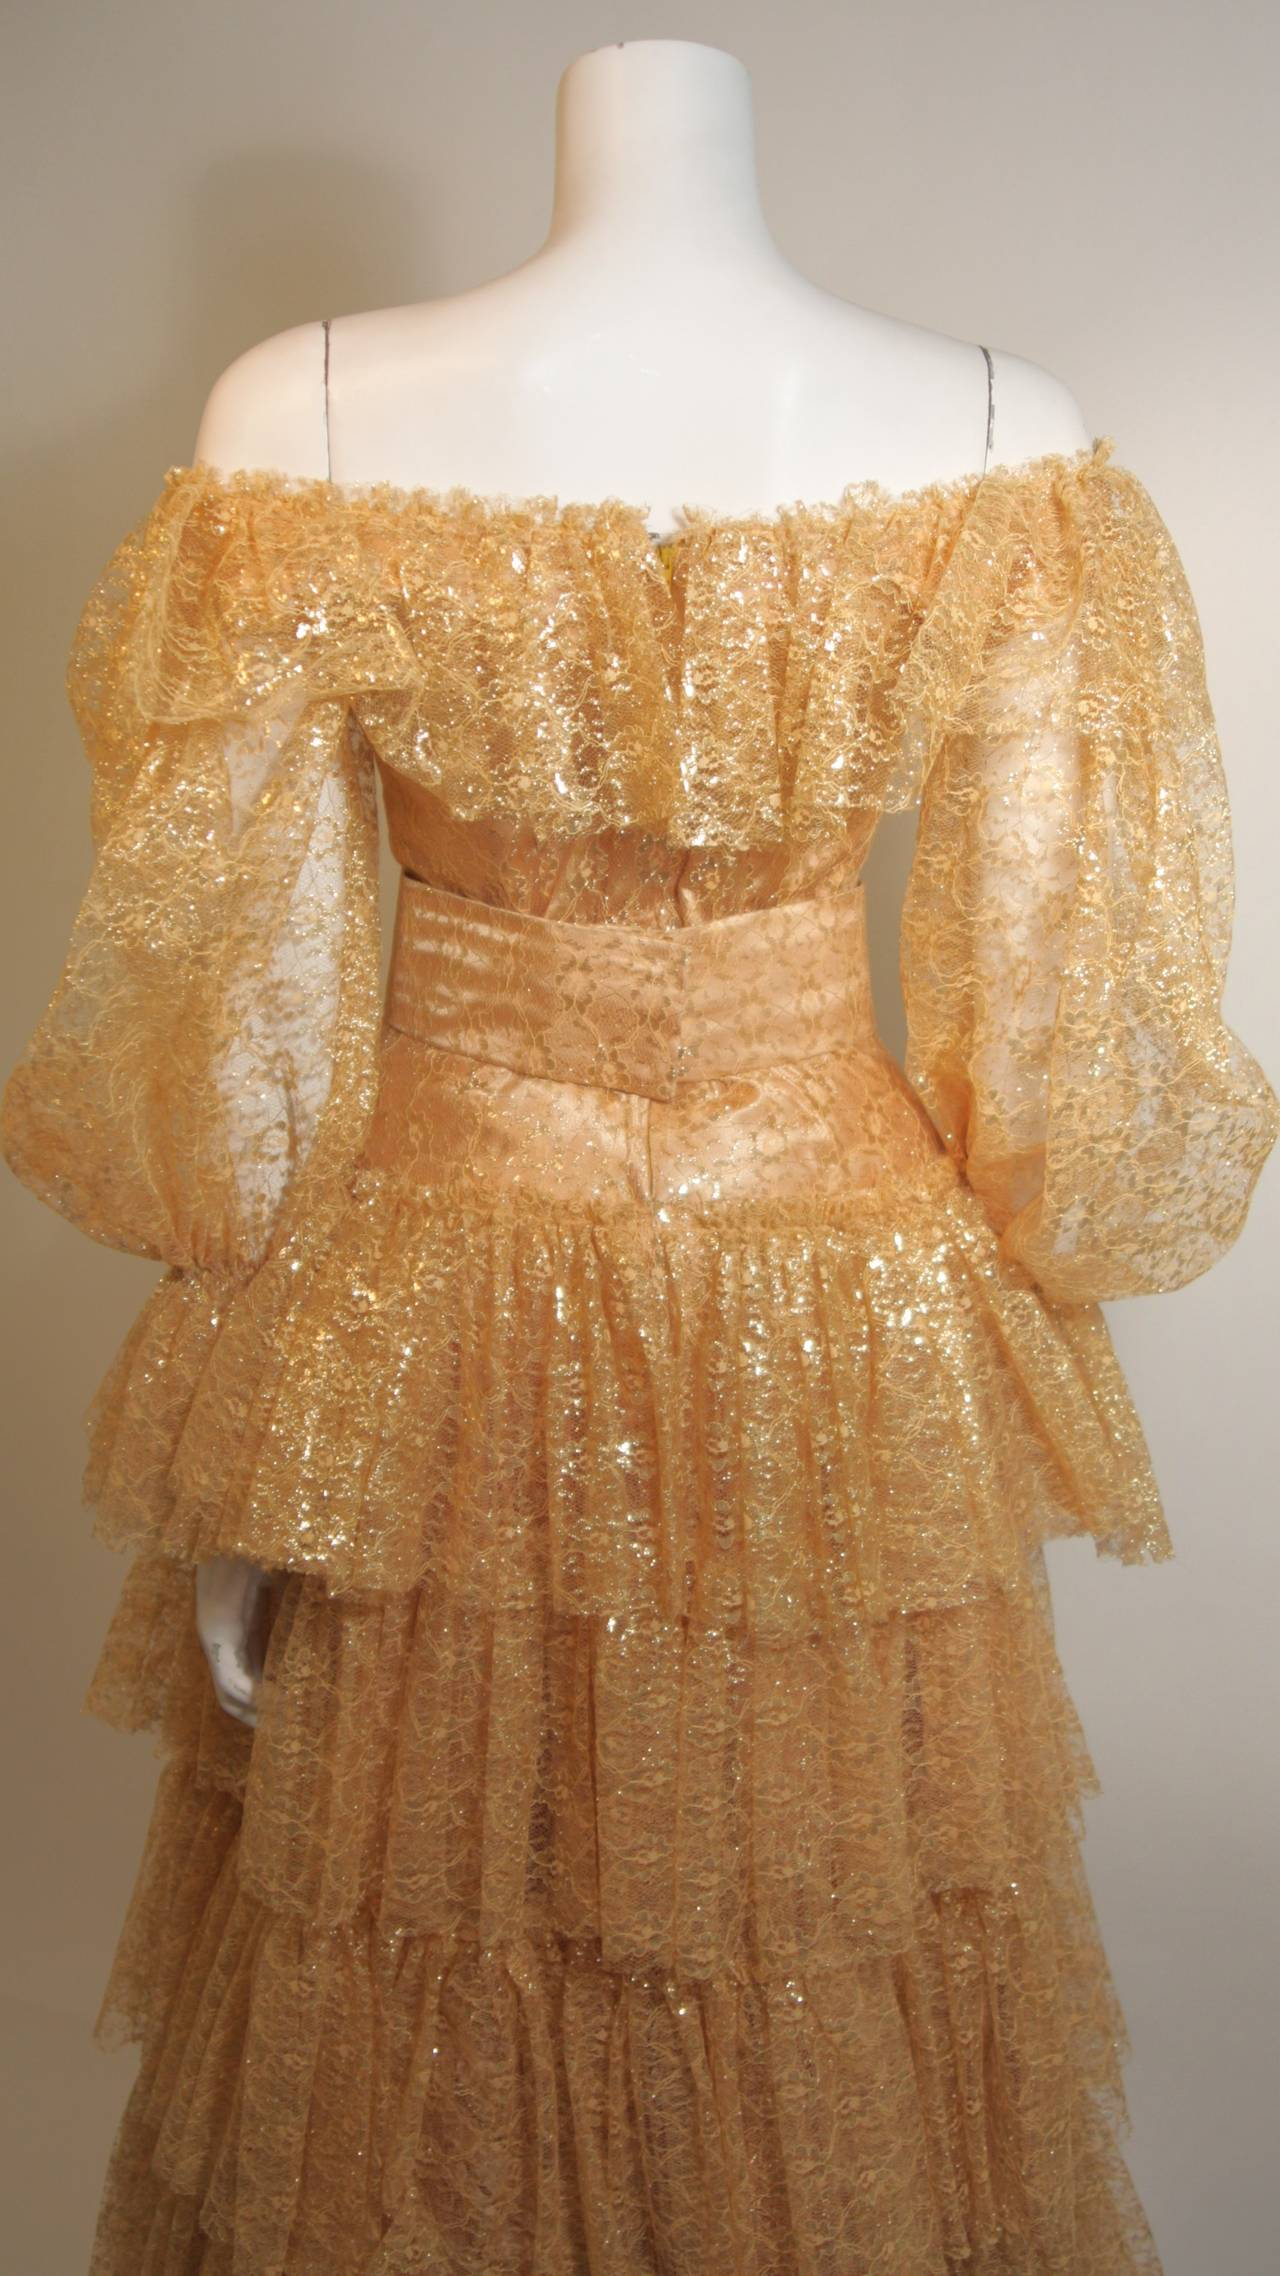 Attributed to Travilla Gold Tiered Lace Ball Gown with sheer lace sleeves size 4 9